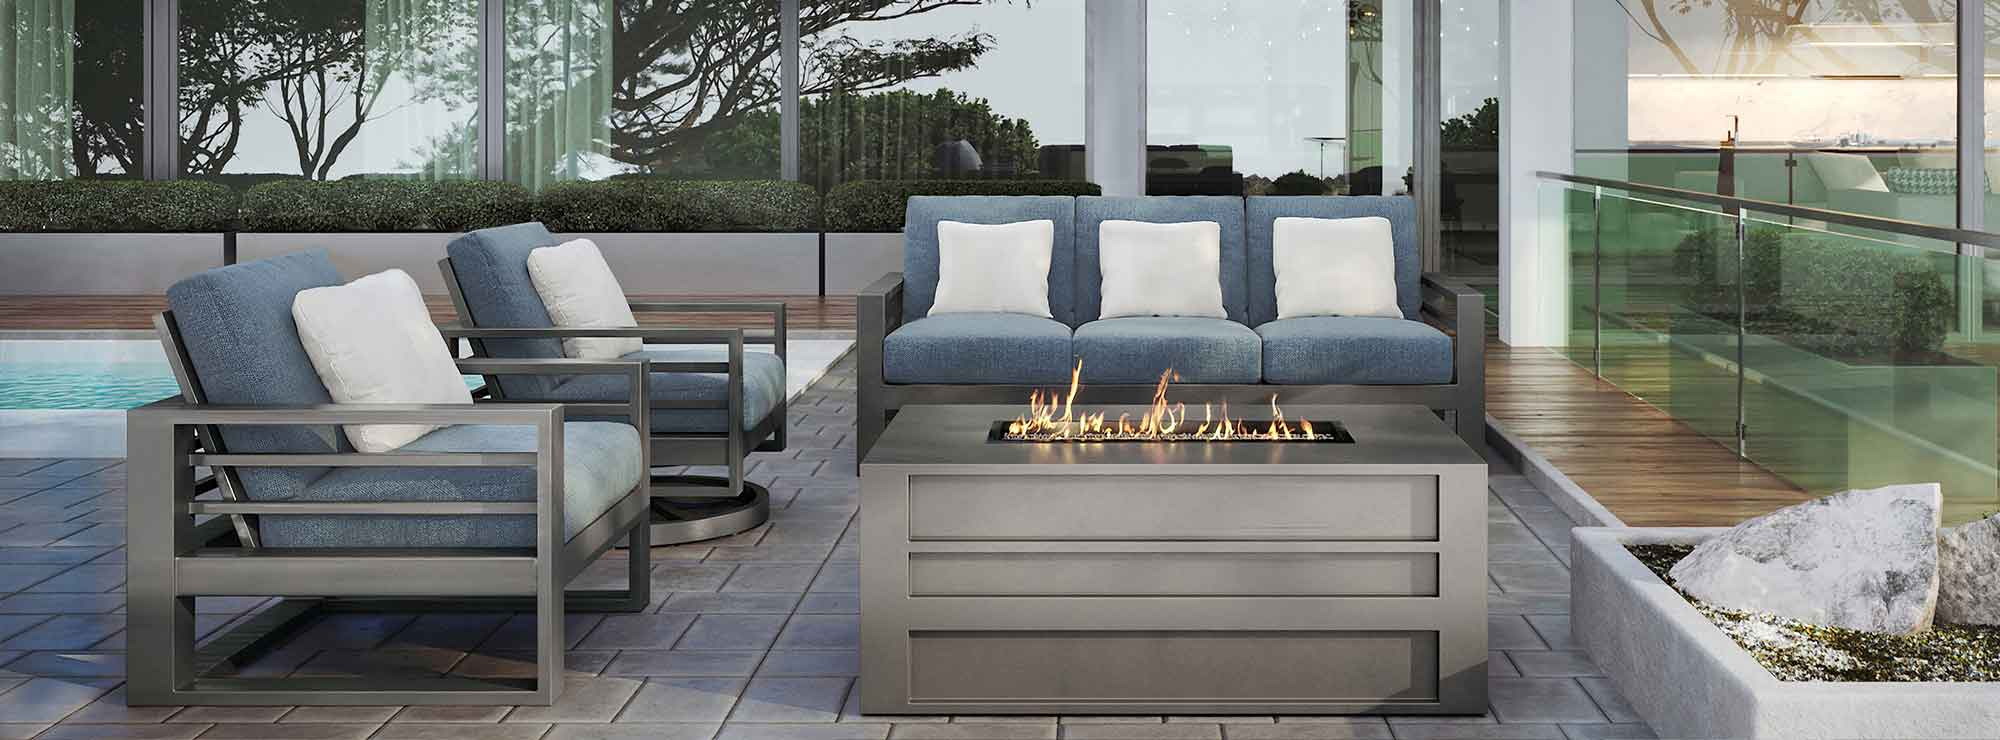 Palermo High Back Sofa w/ Fire Pit Lifestyle Image